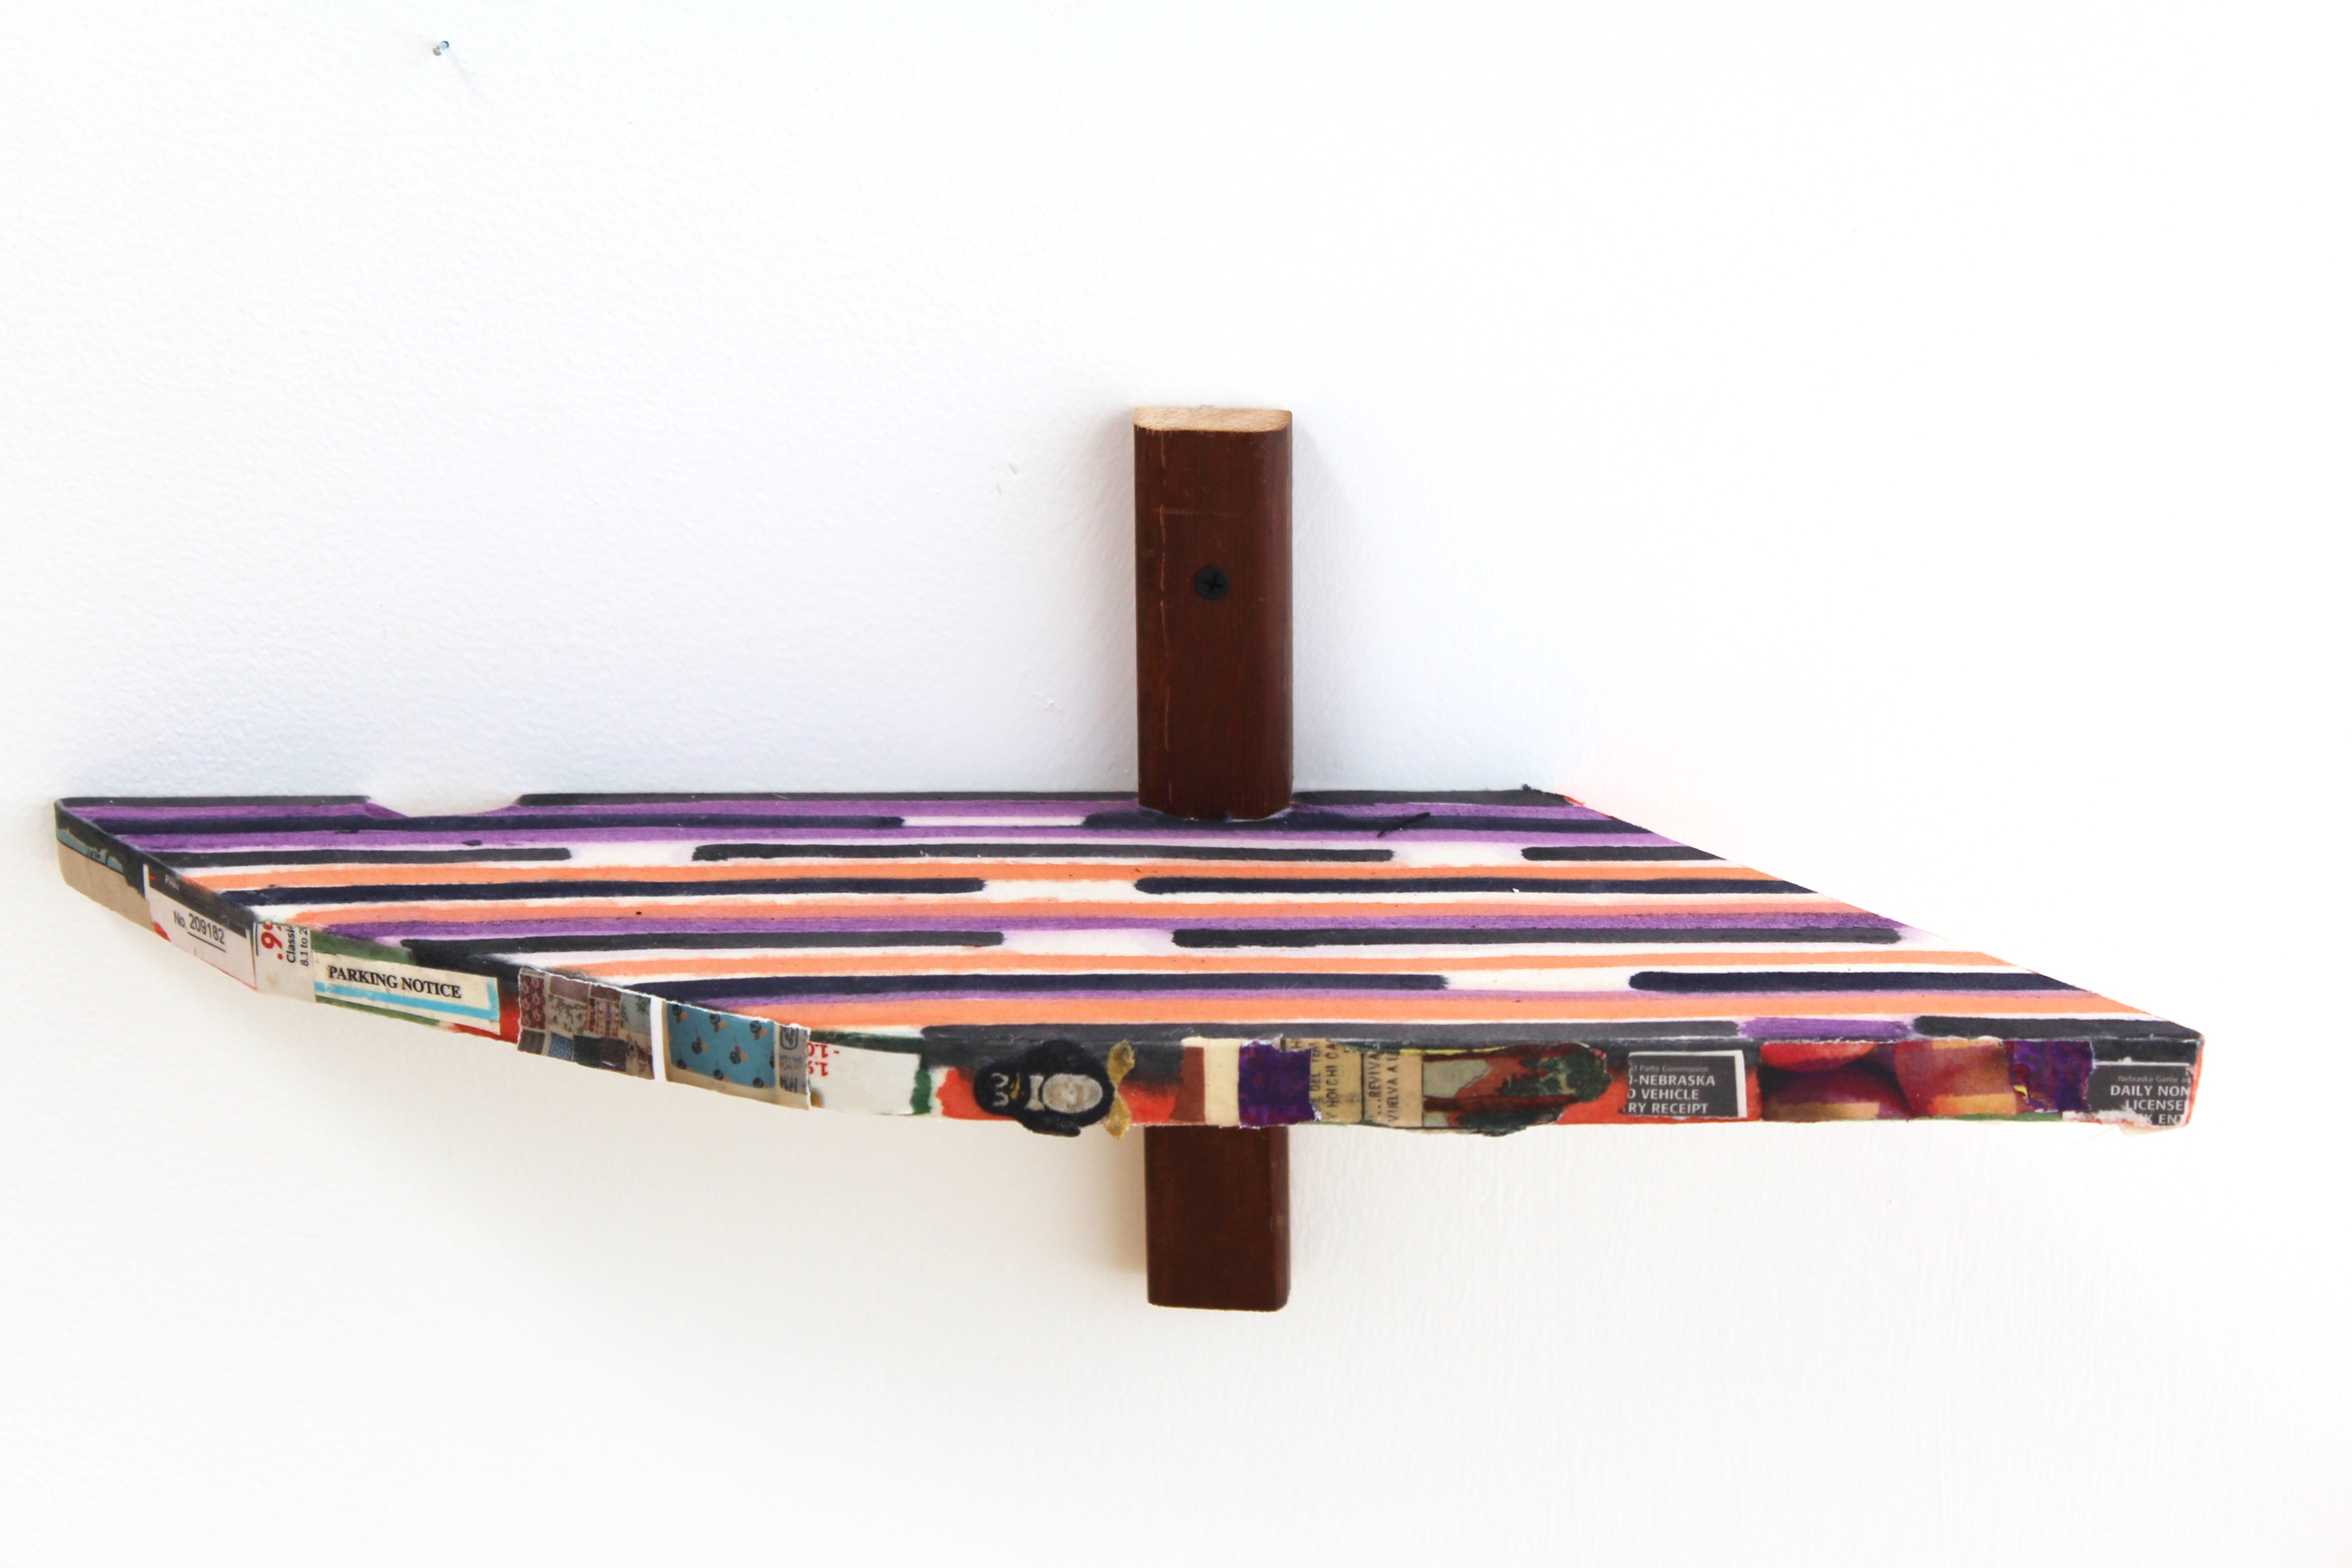 Kevin McNamee-Tweed.<em> Pen Shelf</em>, 2019. Ink on muslin mounted to wood with affixed newsprint, aluminum, and toy, 9 x 19 1/2 x 7 inches (22.9 x 49.5 x 17.8 cm)